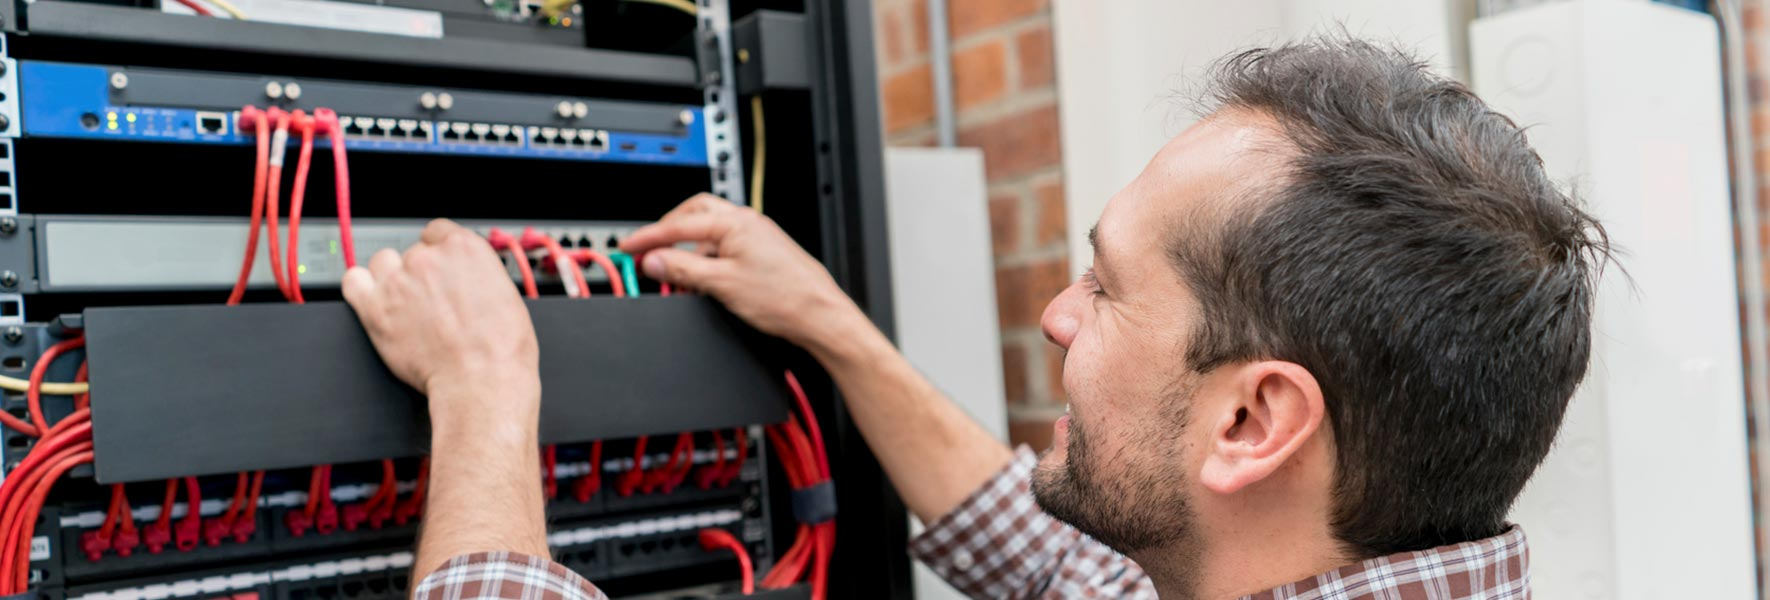 man working on cabling system